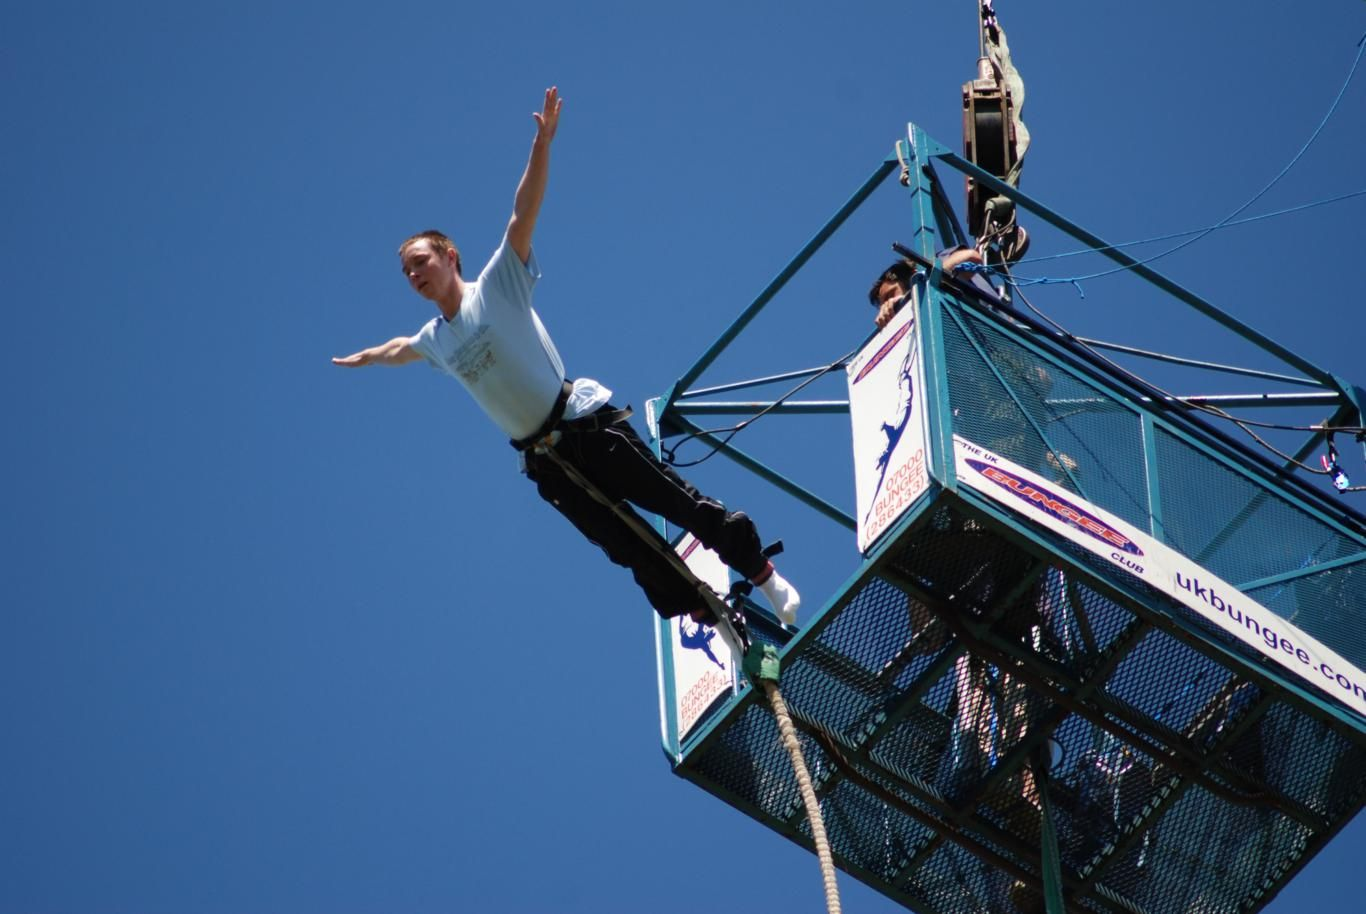 Adventurous Bungee Jumping in India >> Apart from Rishikesh, people can consider bungee jumping in many other places like Goa, Bangalore, or Lonavala. The location can be selected based on budget and time constrains.  #BungeeJumpinginIndia, #Adventurous #BungeeJumping, #365Hops